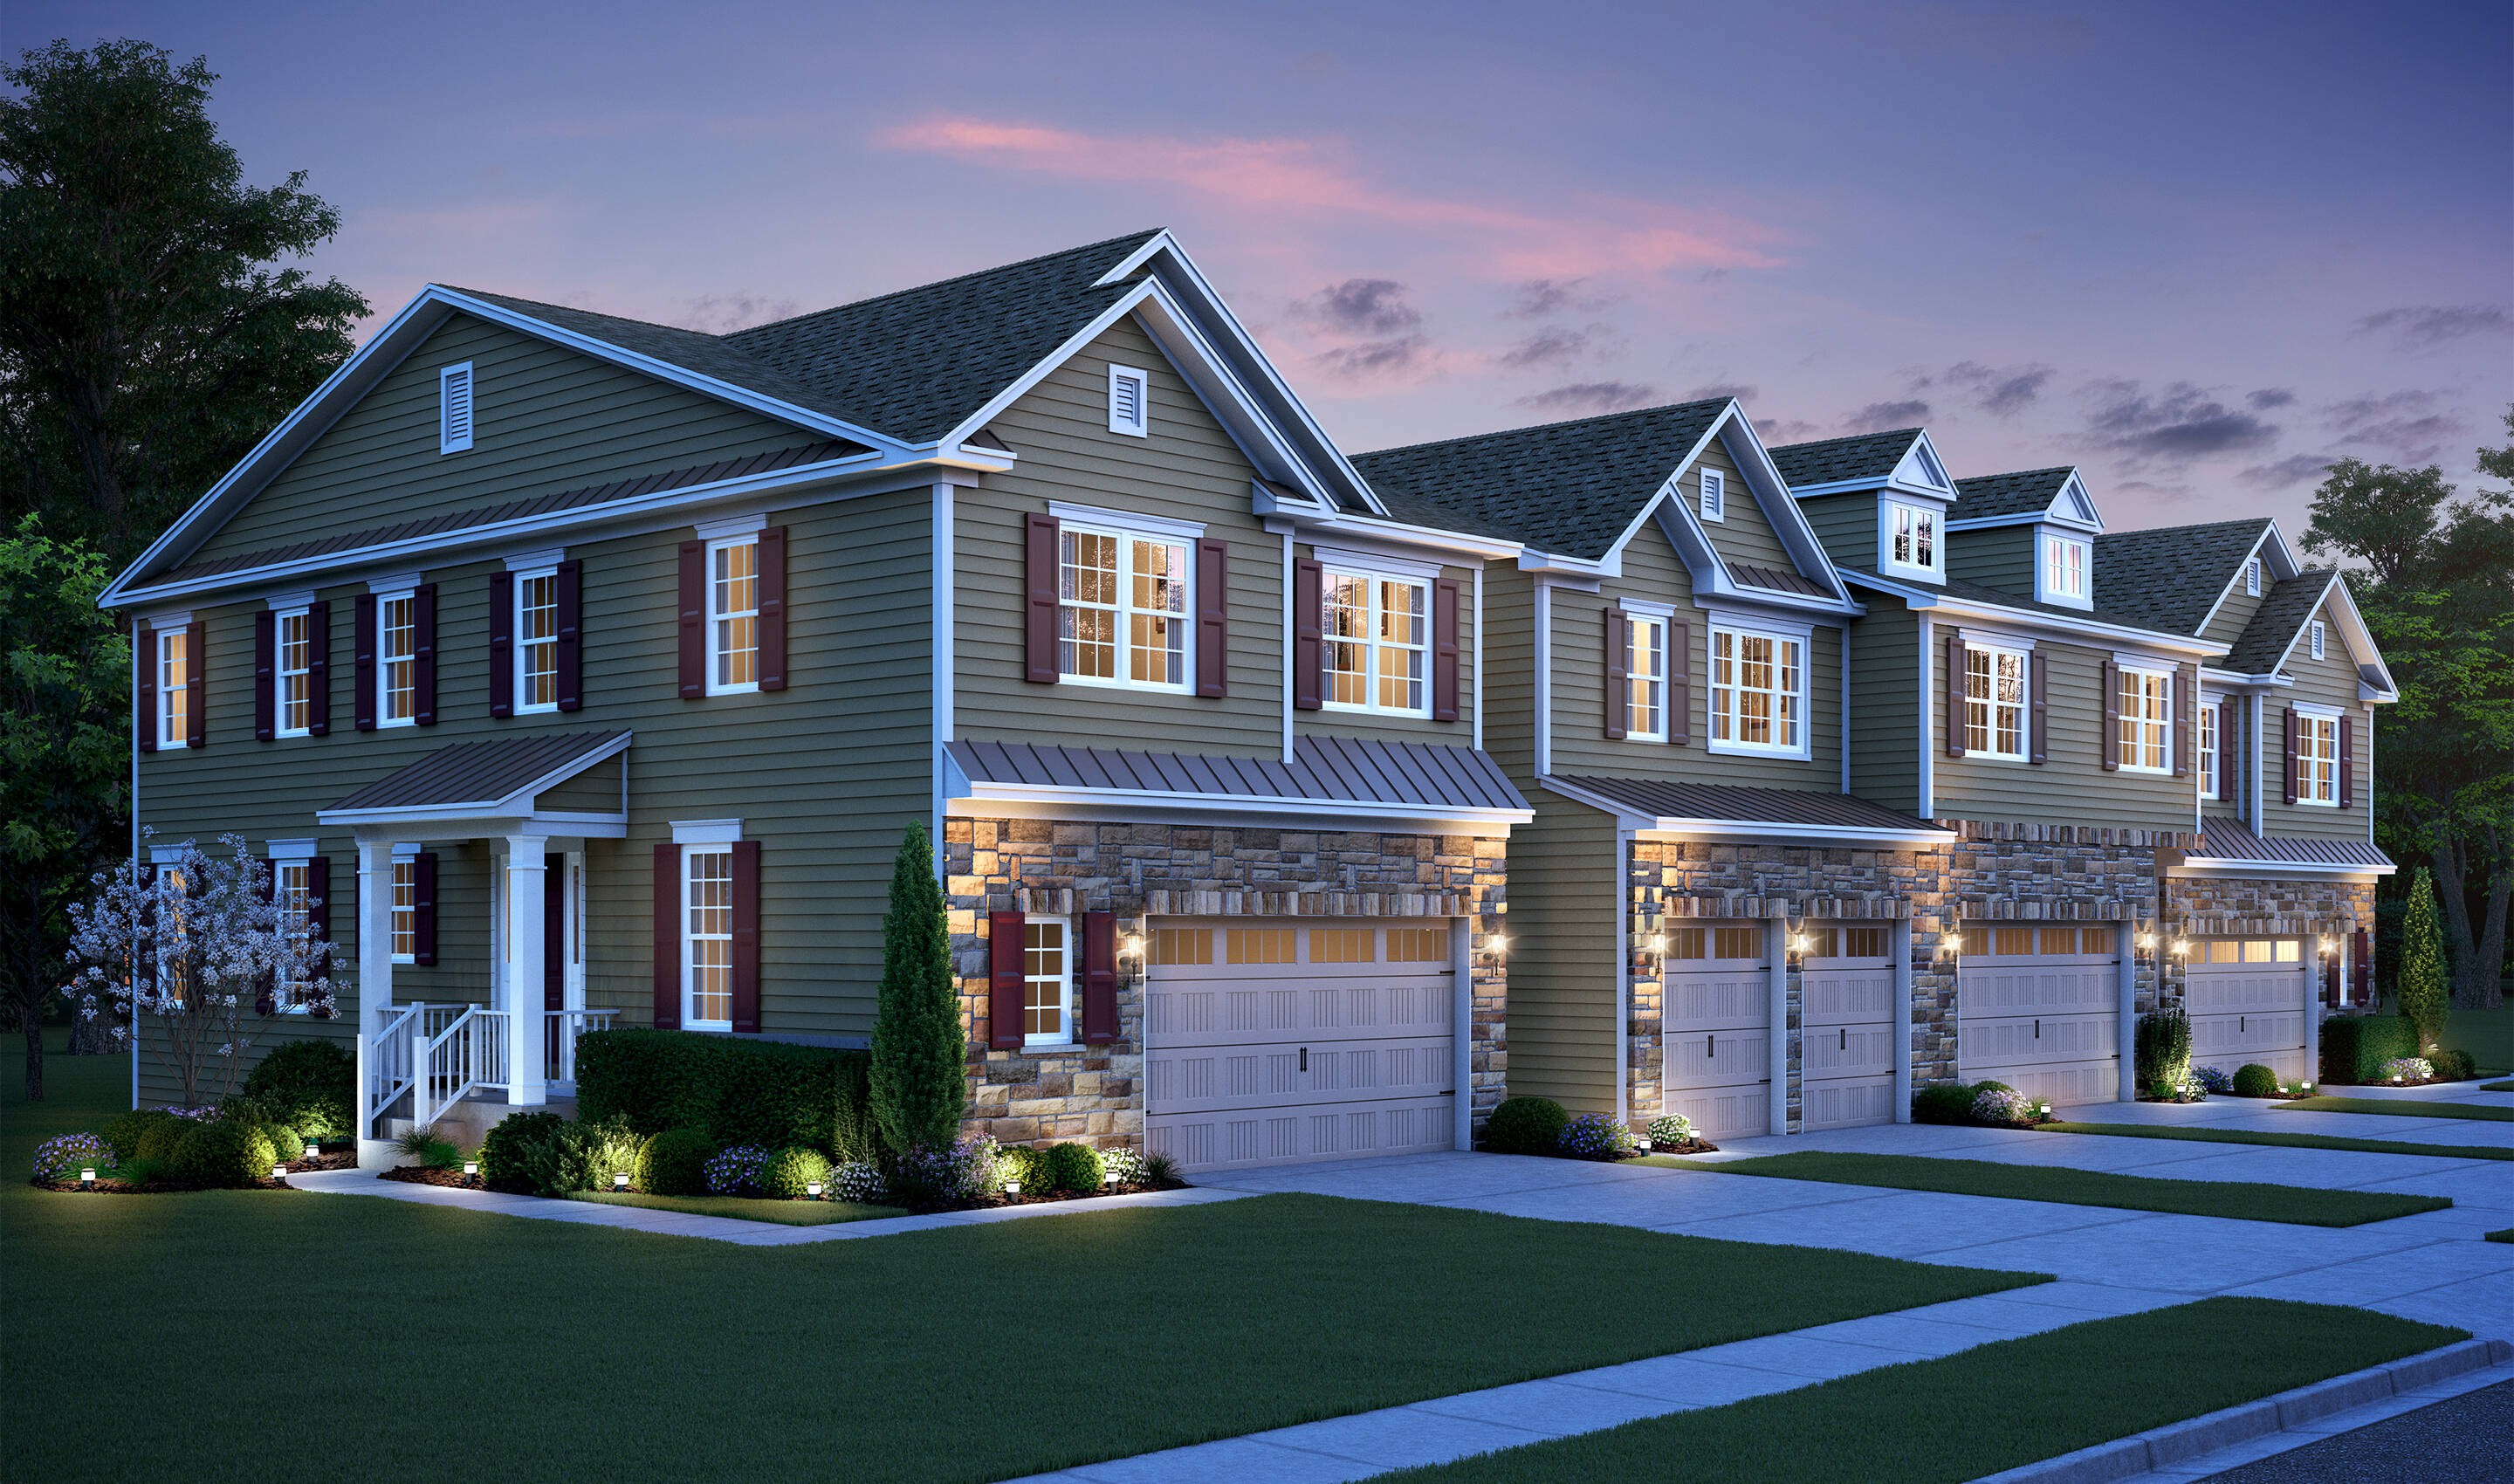 Swartmore D New Homes Morristown NJ · Bldg 14 4 Unit TH Elev